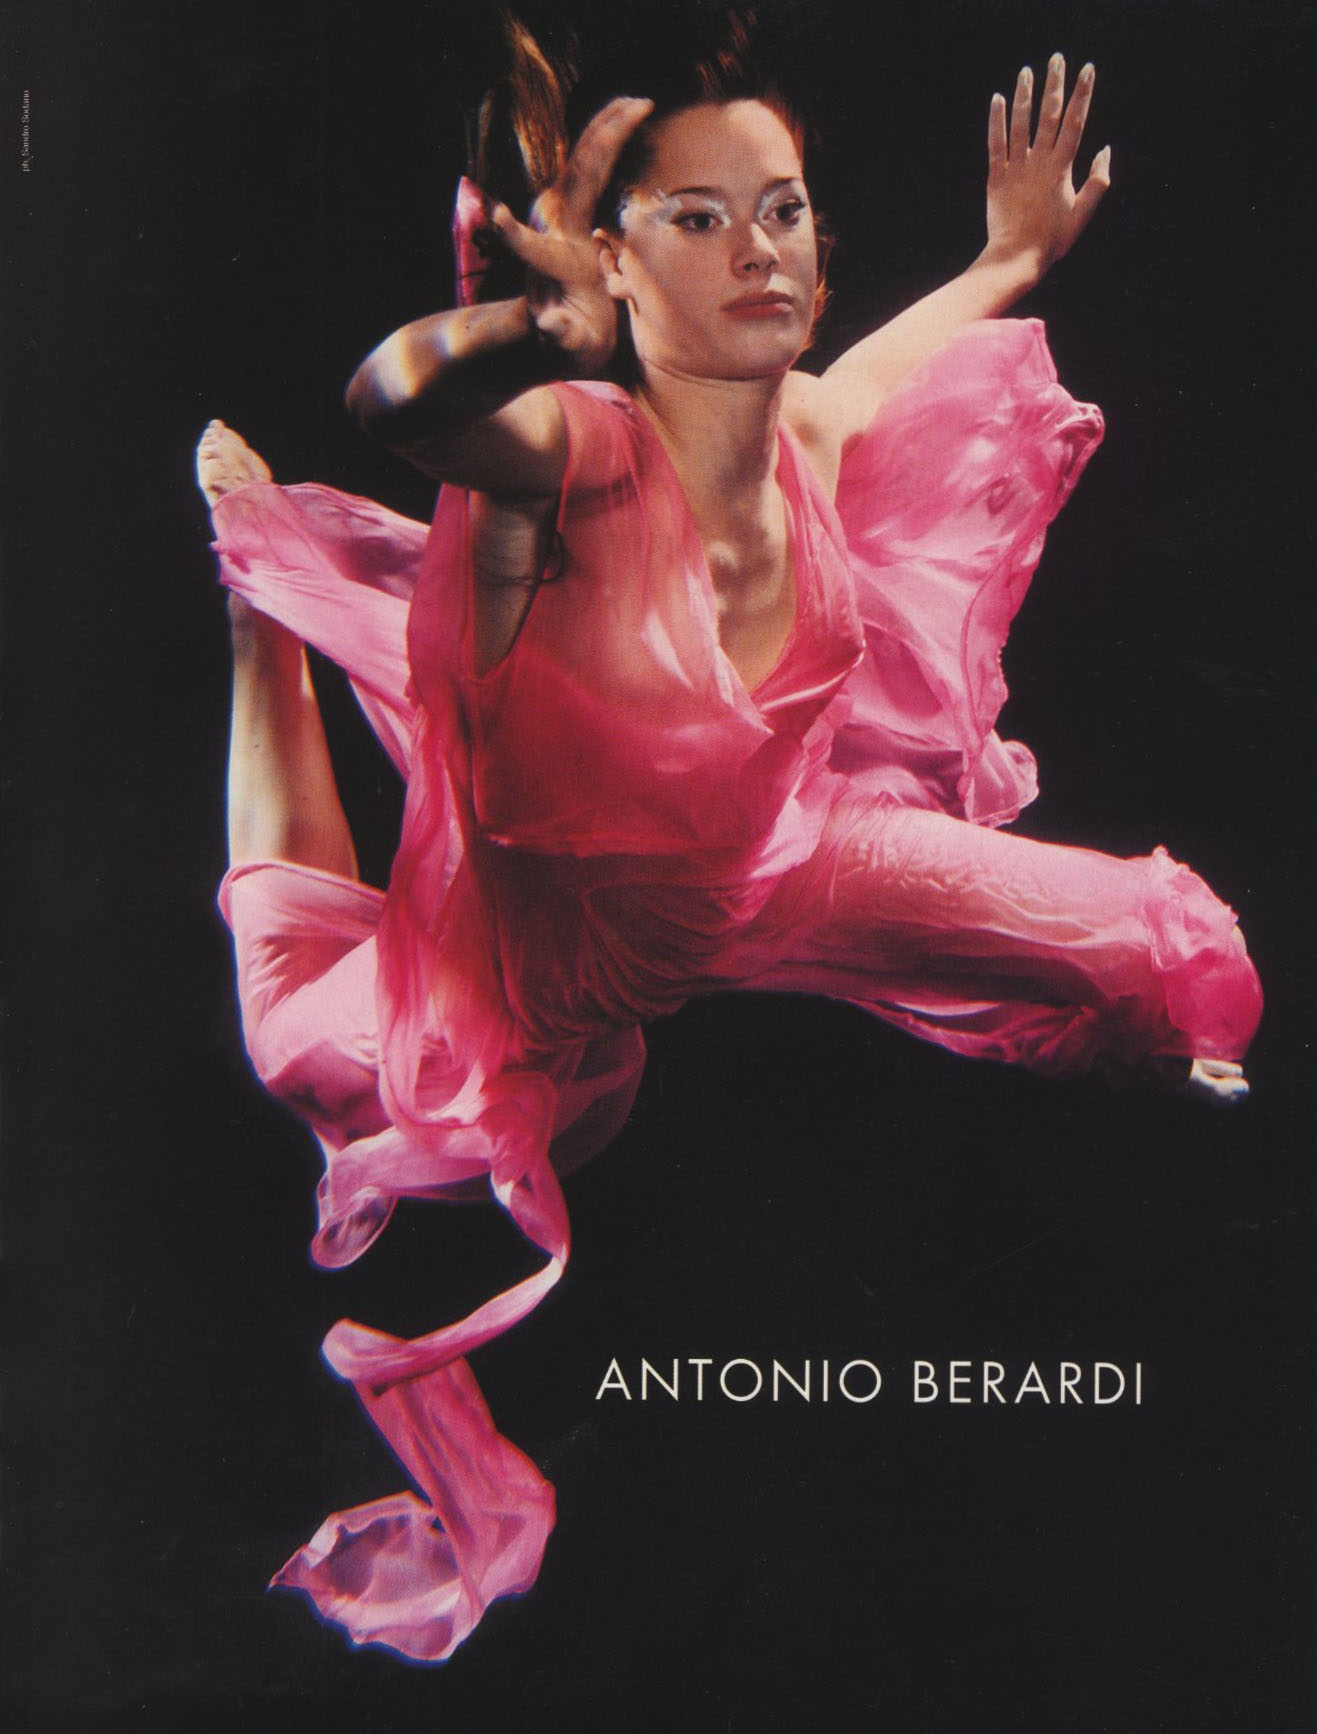 ANTONIO BERARDI | AD CAMPAIGN | PHOTOGRAPHY SANDRO SODANO | DUTCH 26 | MARCH/APRIL 2000